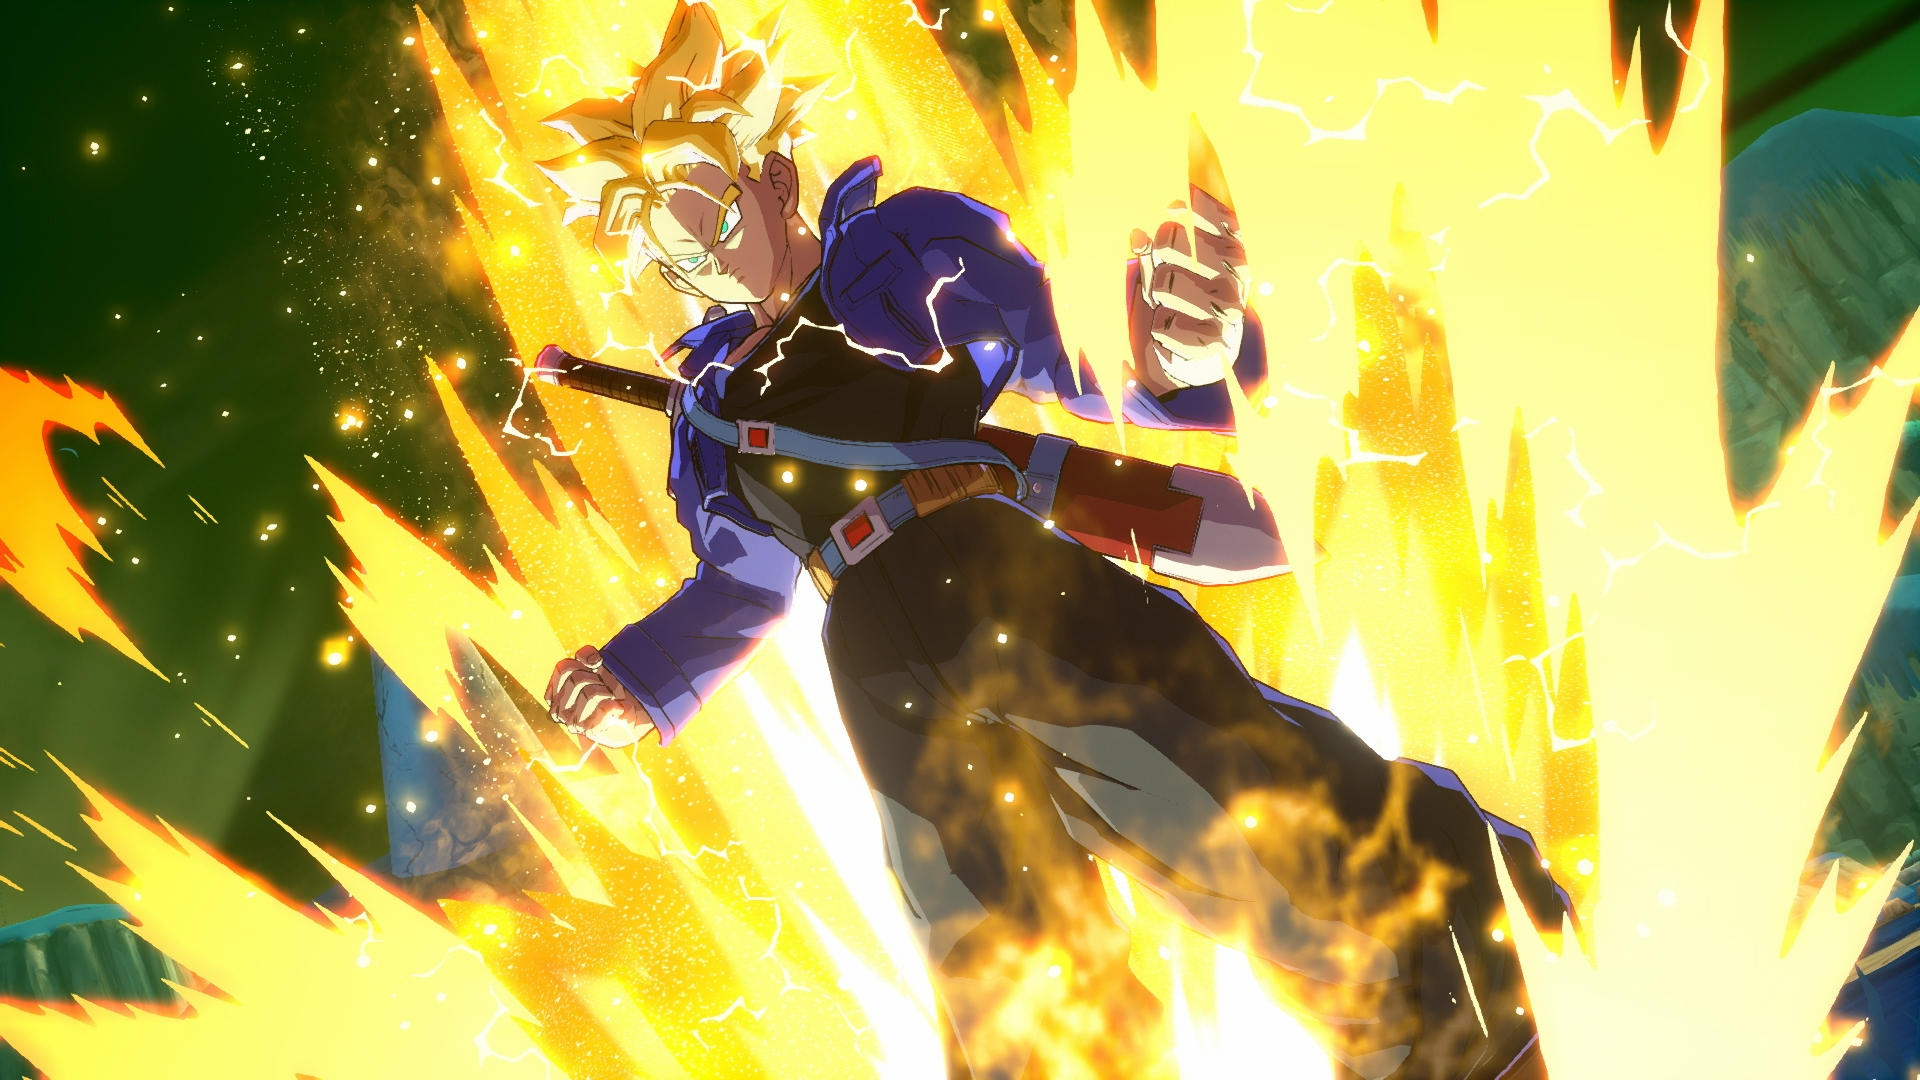 dragon-ball-fighterz-will-release-in-january-social.jpg